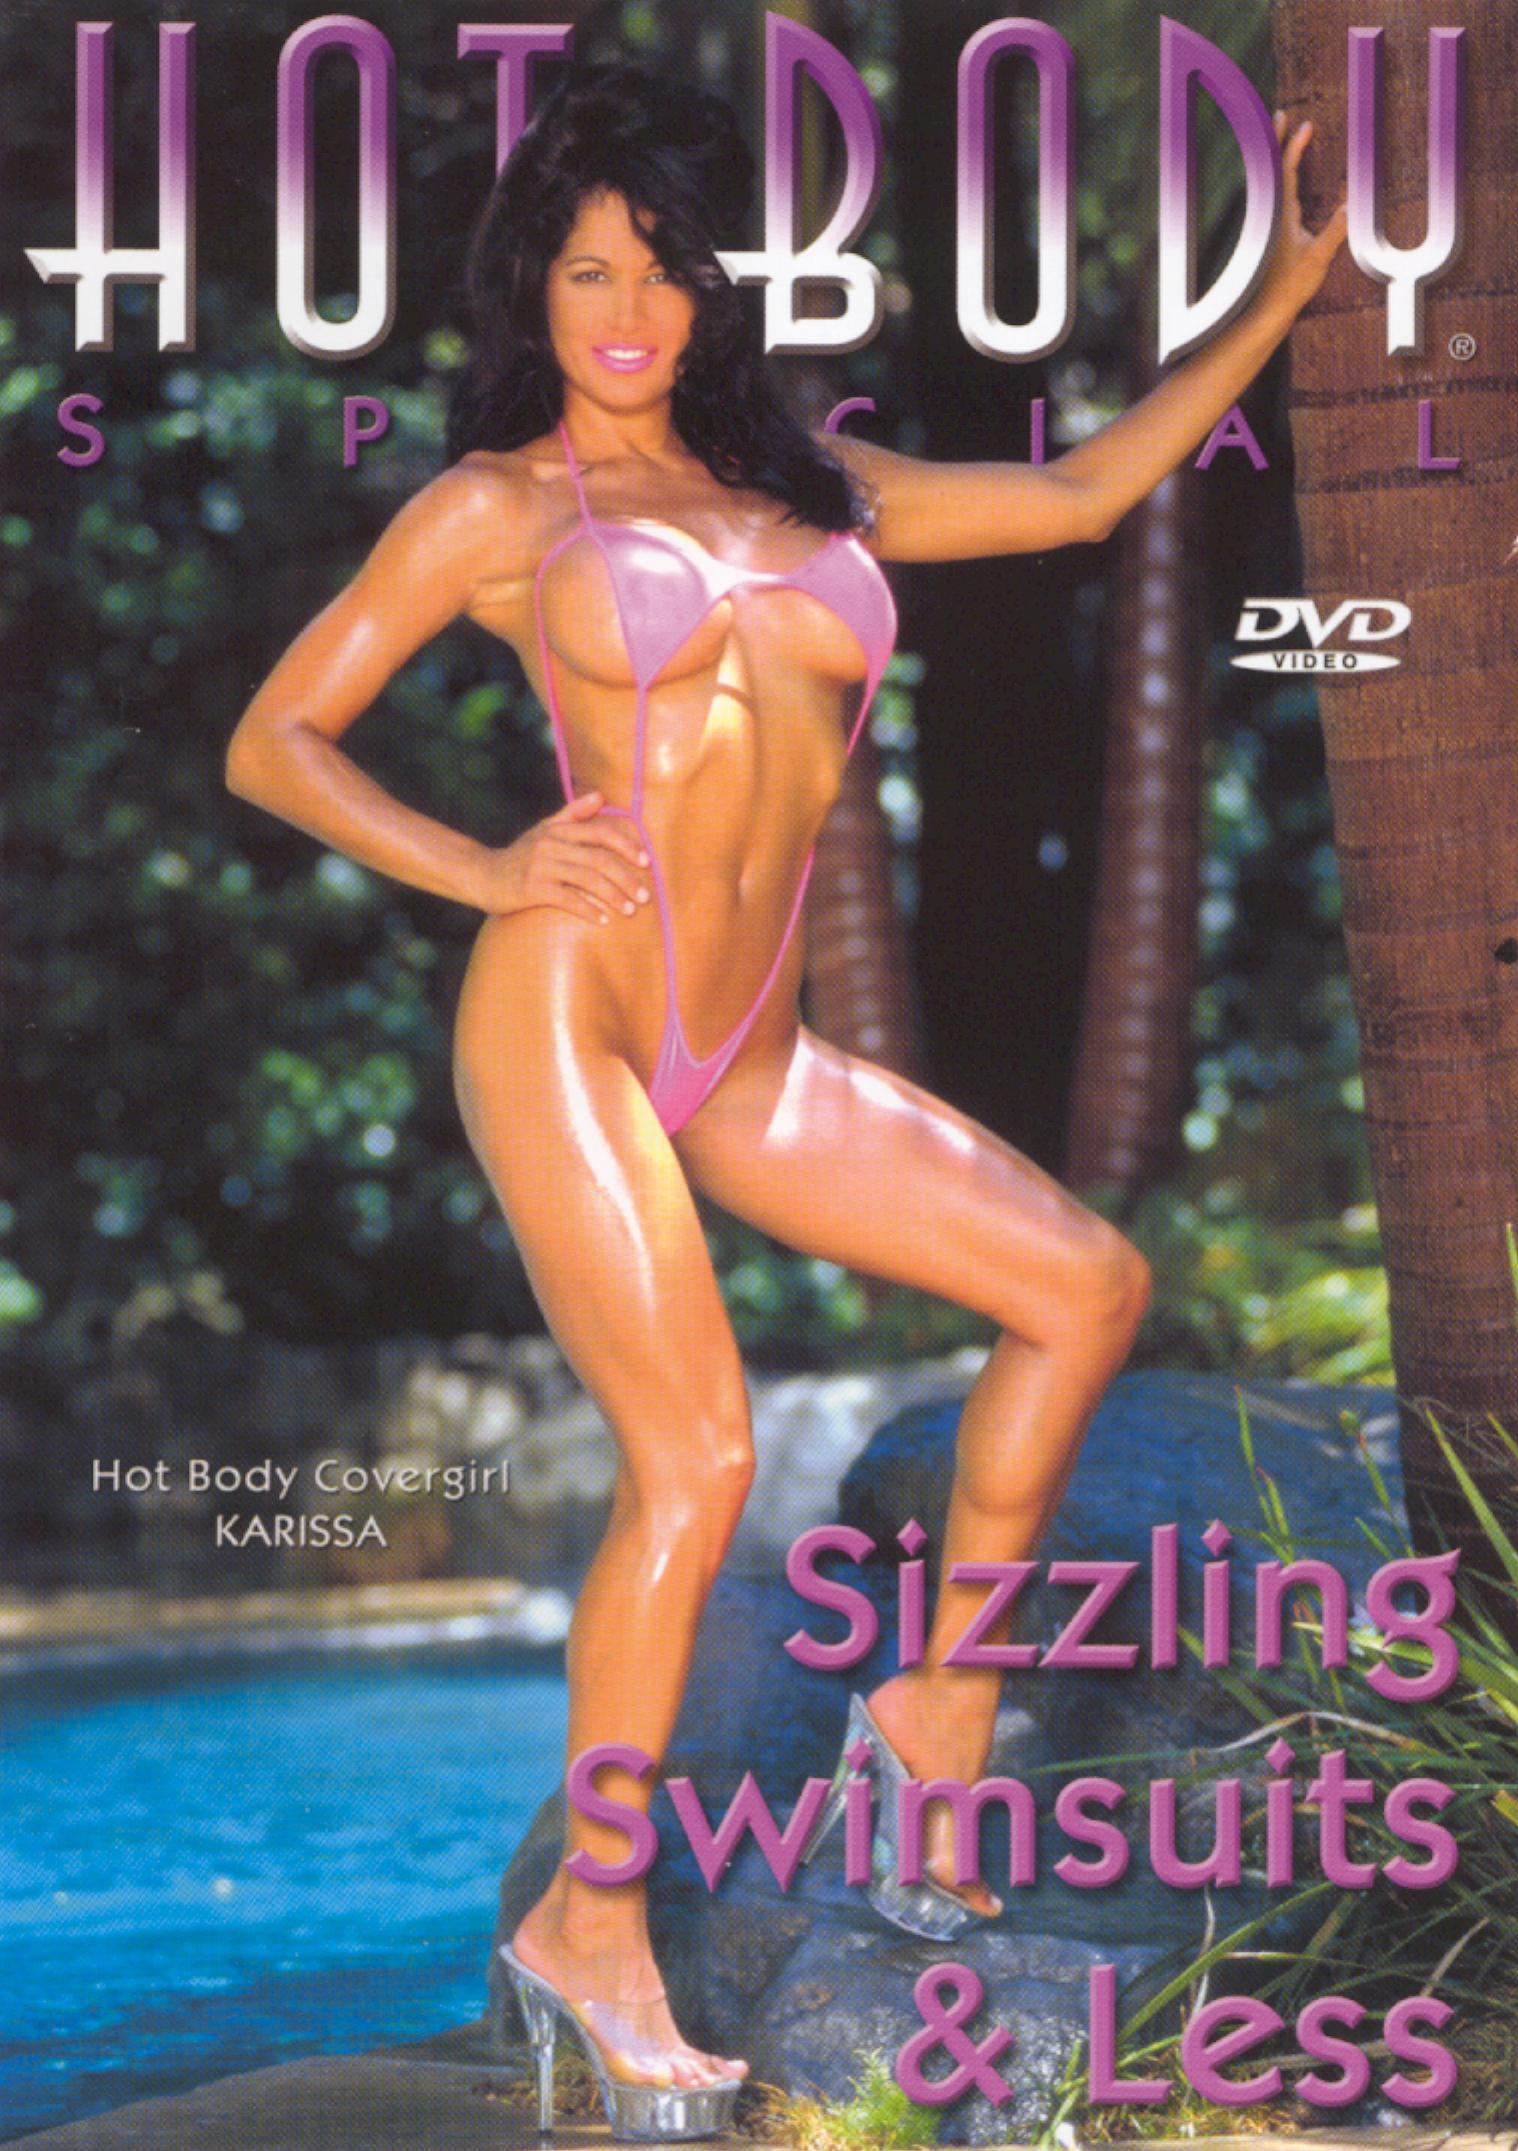 Hot Body: Sizzling Swimsuits & Less